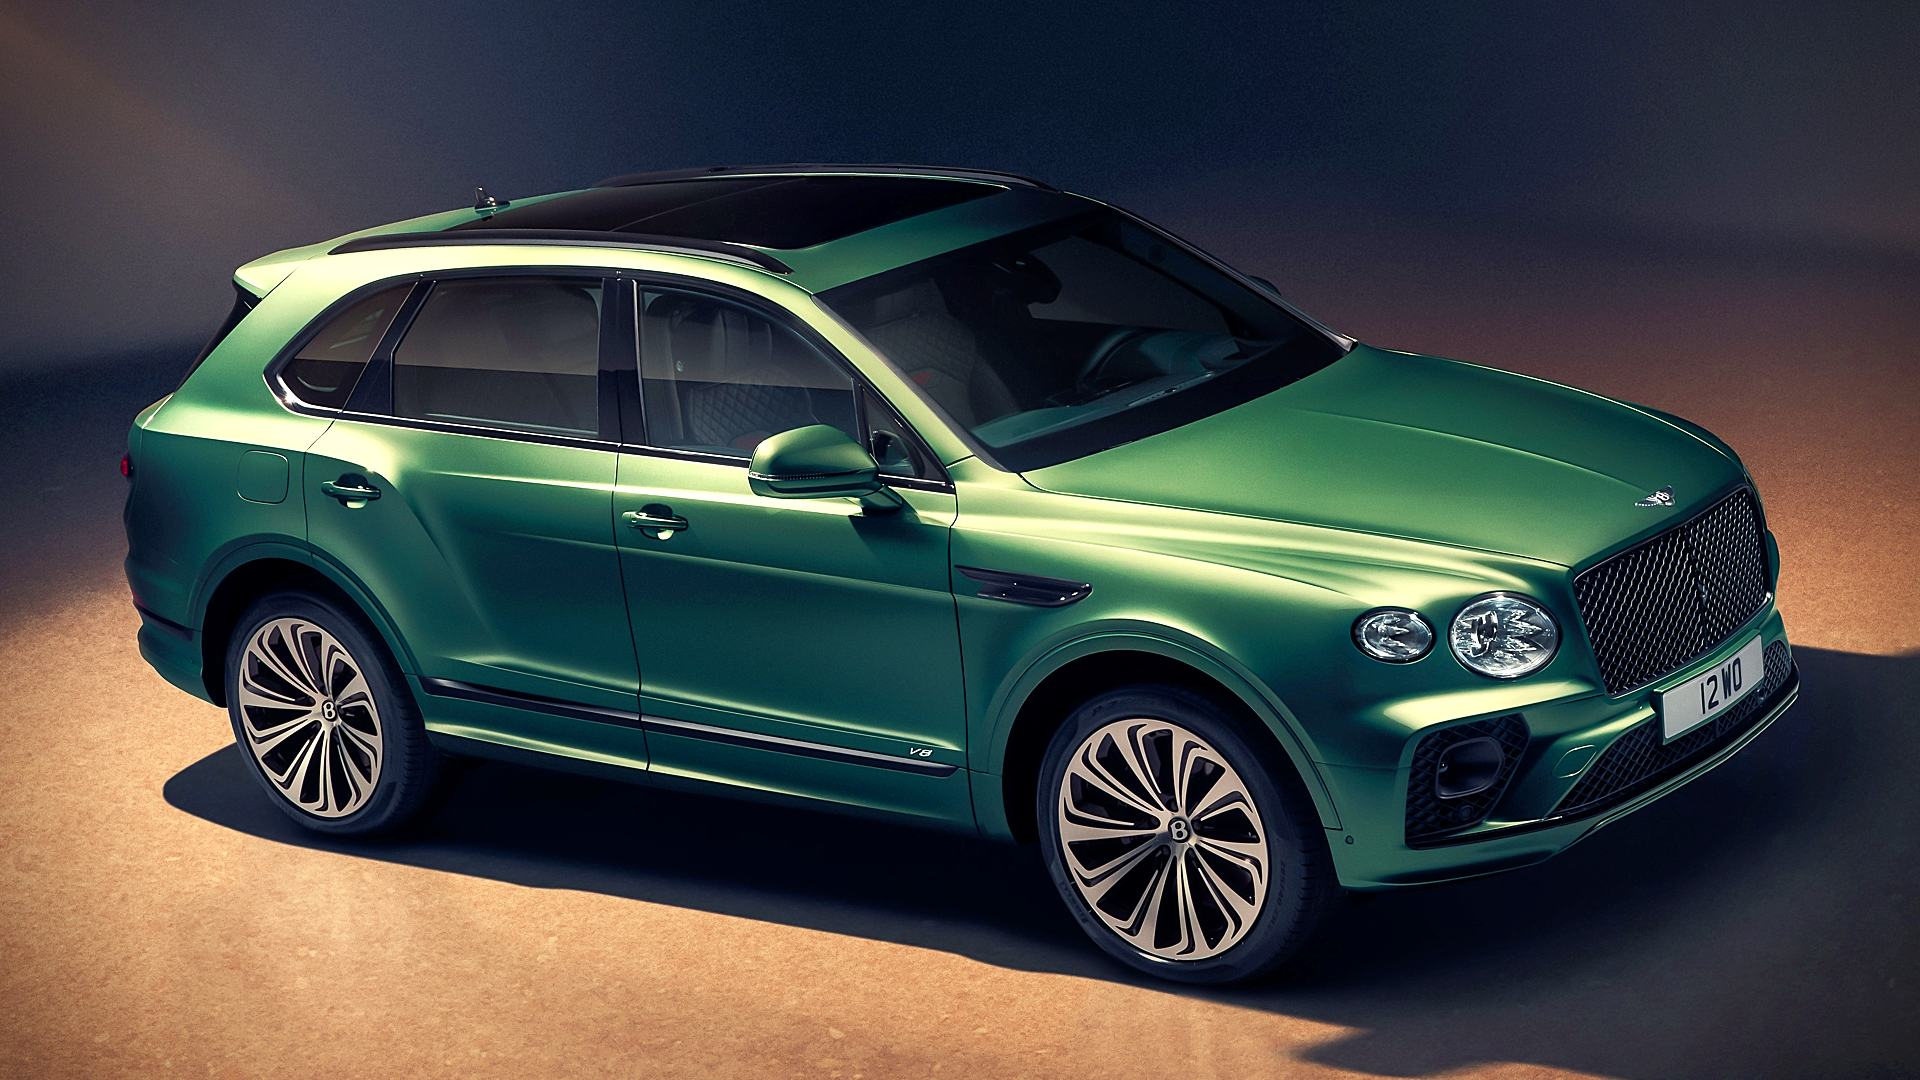 2021 Bentley Bentayga Green Pictures